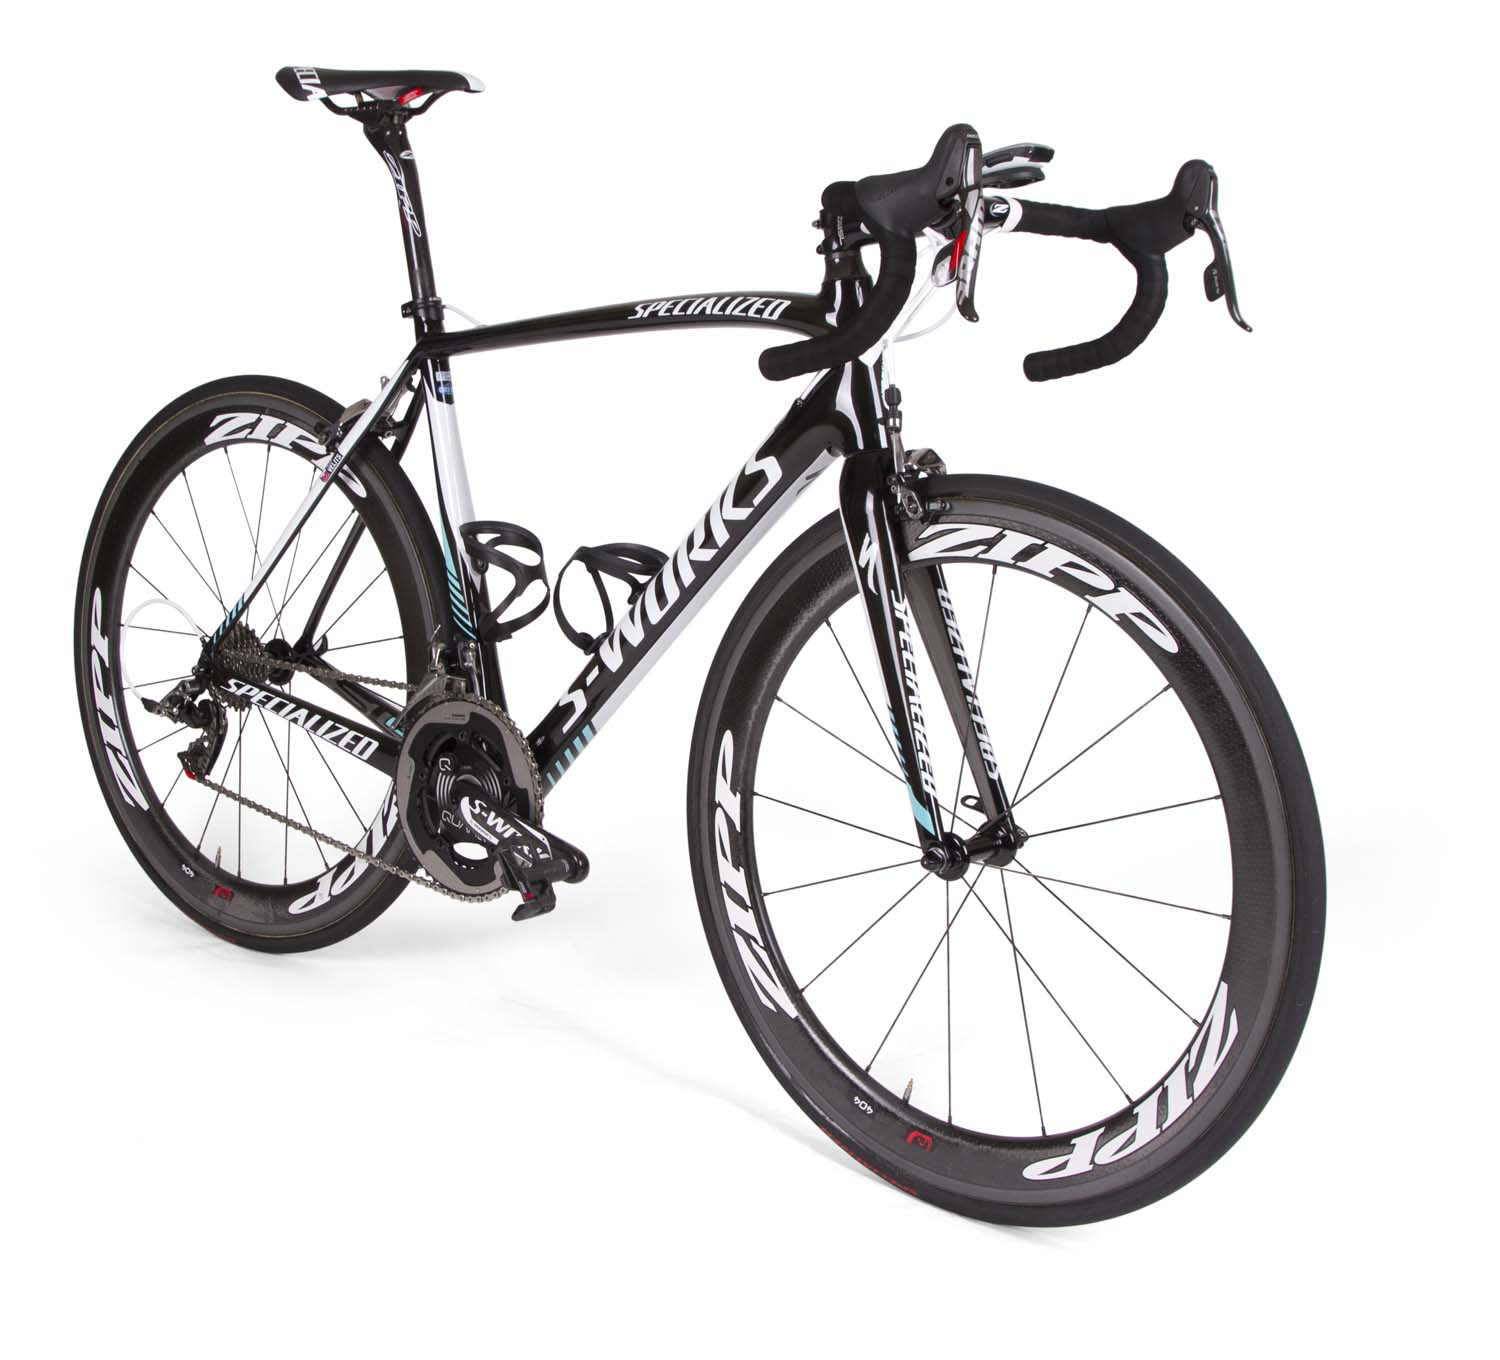 Specialized_Omega-Pharma (2013)